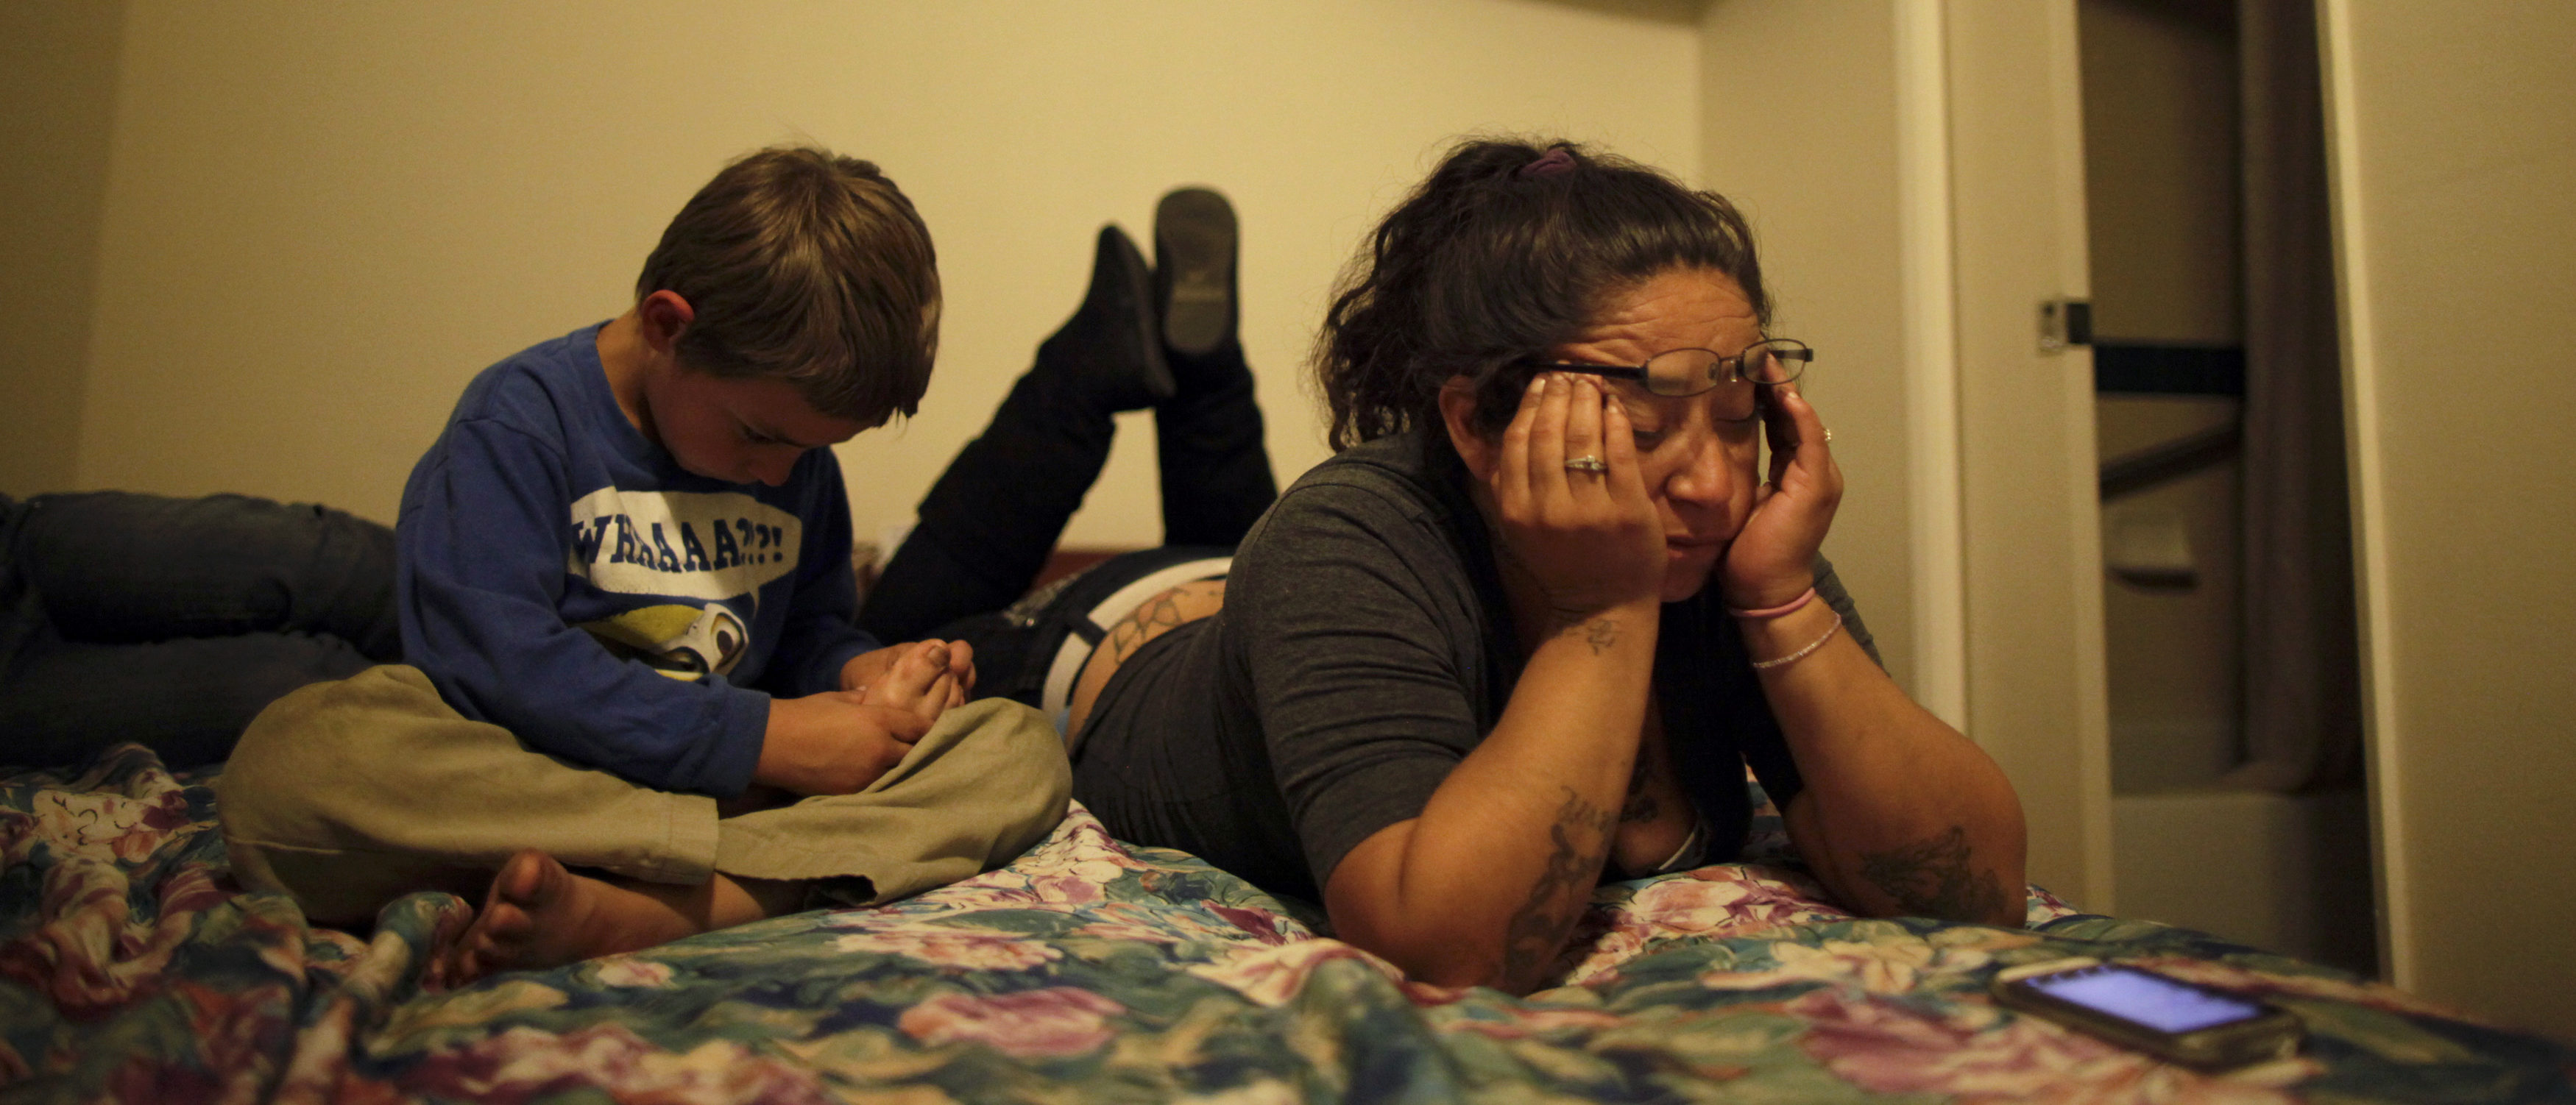 Angelica Cervantes, 36, (R) and her son Tomas Cervantes, 6, sit in a motel room, in Port Hueneme, some 65 miles northwest of Los Angeles, California February 28, 2012. REUTERS/Lucy Nicholson (UNITED STATES - Tags: SOCIETY) - GM1E83A05B901